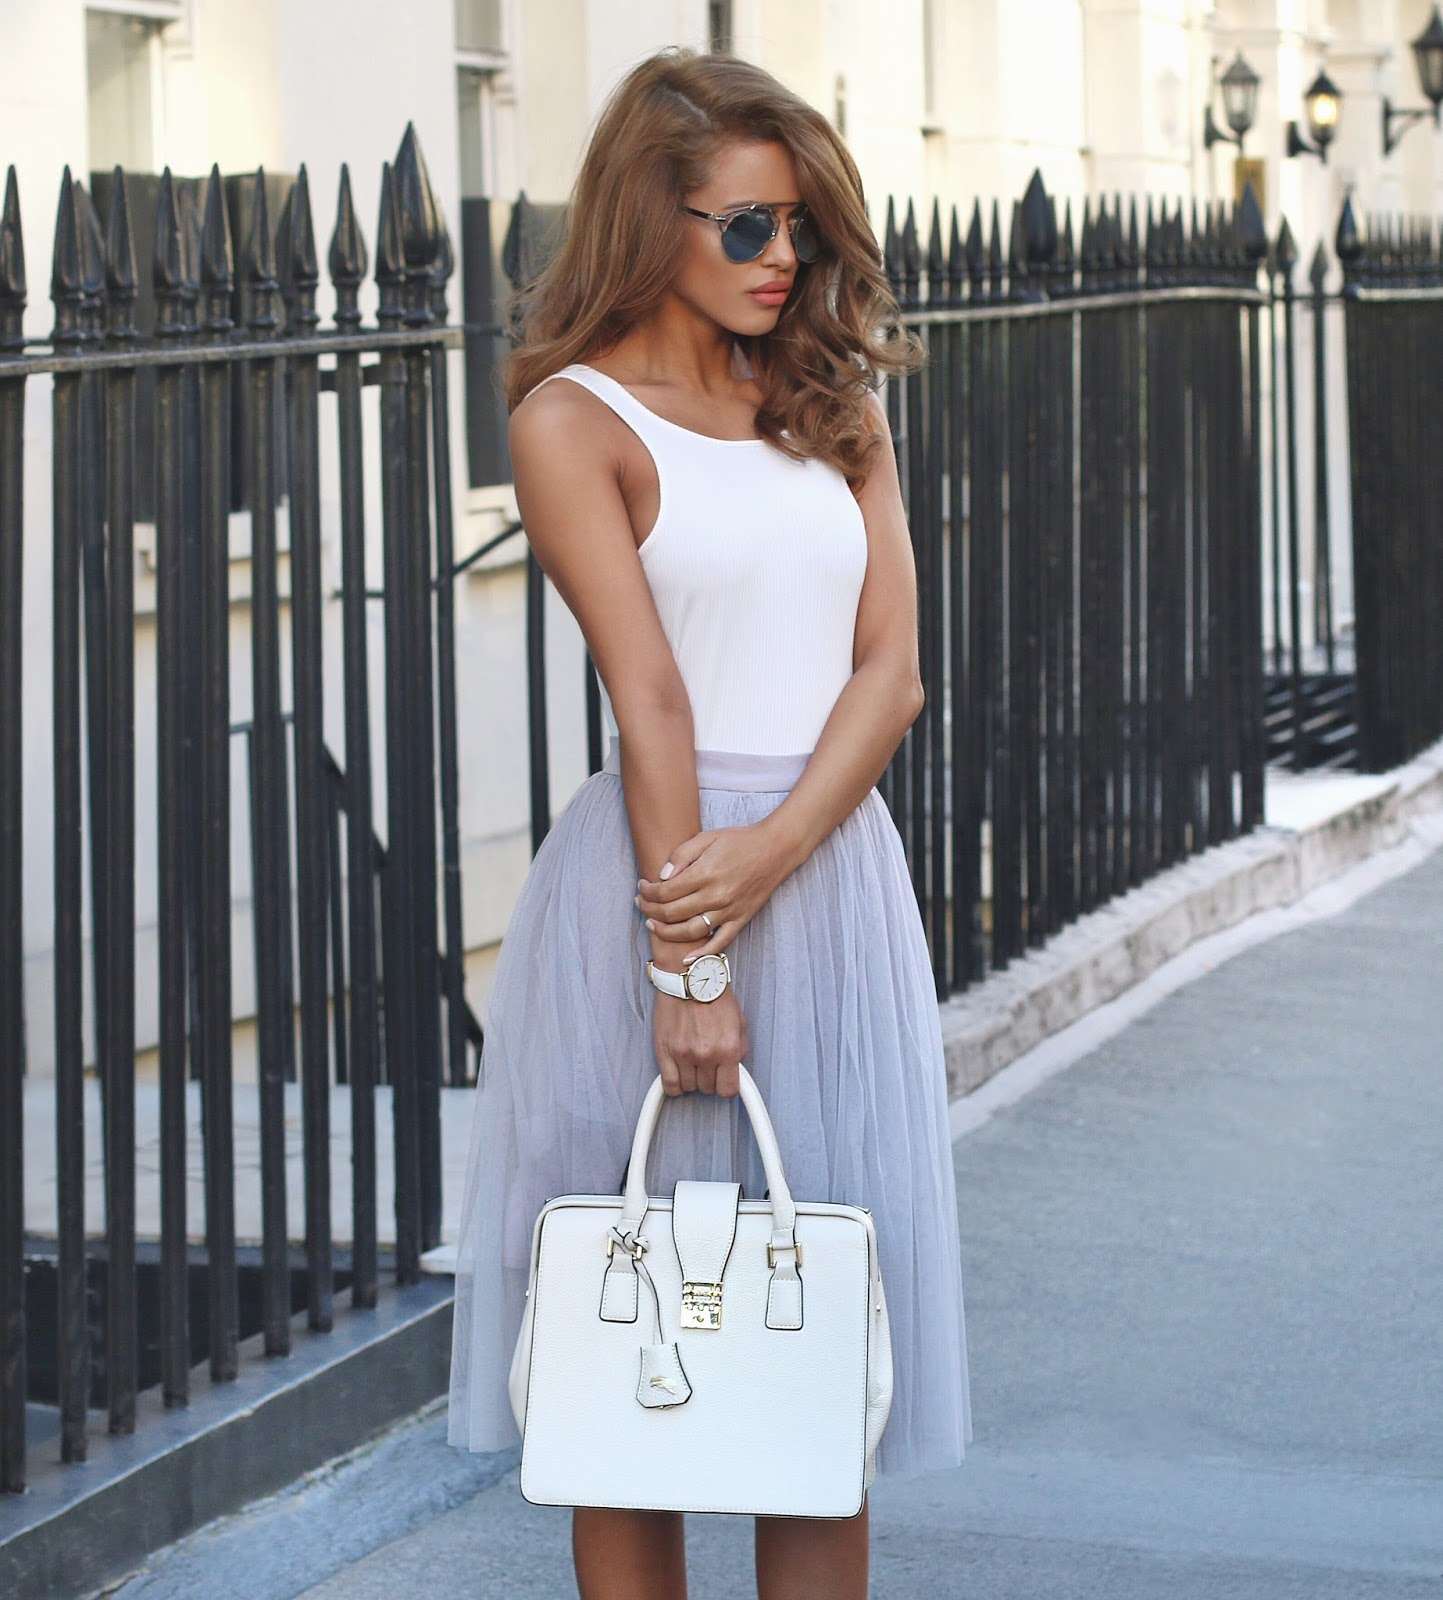 Nada Adelle rocks this Tulle skirt by pairing it with a simple white bodysuit and a statement box bag. Bodysuit: Missguided, Skirt: Lydia Bright.